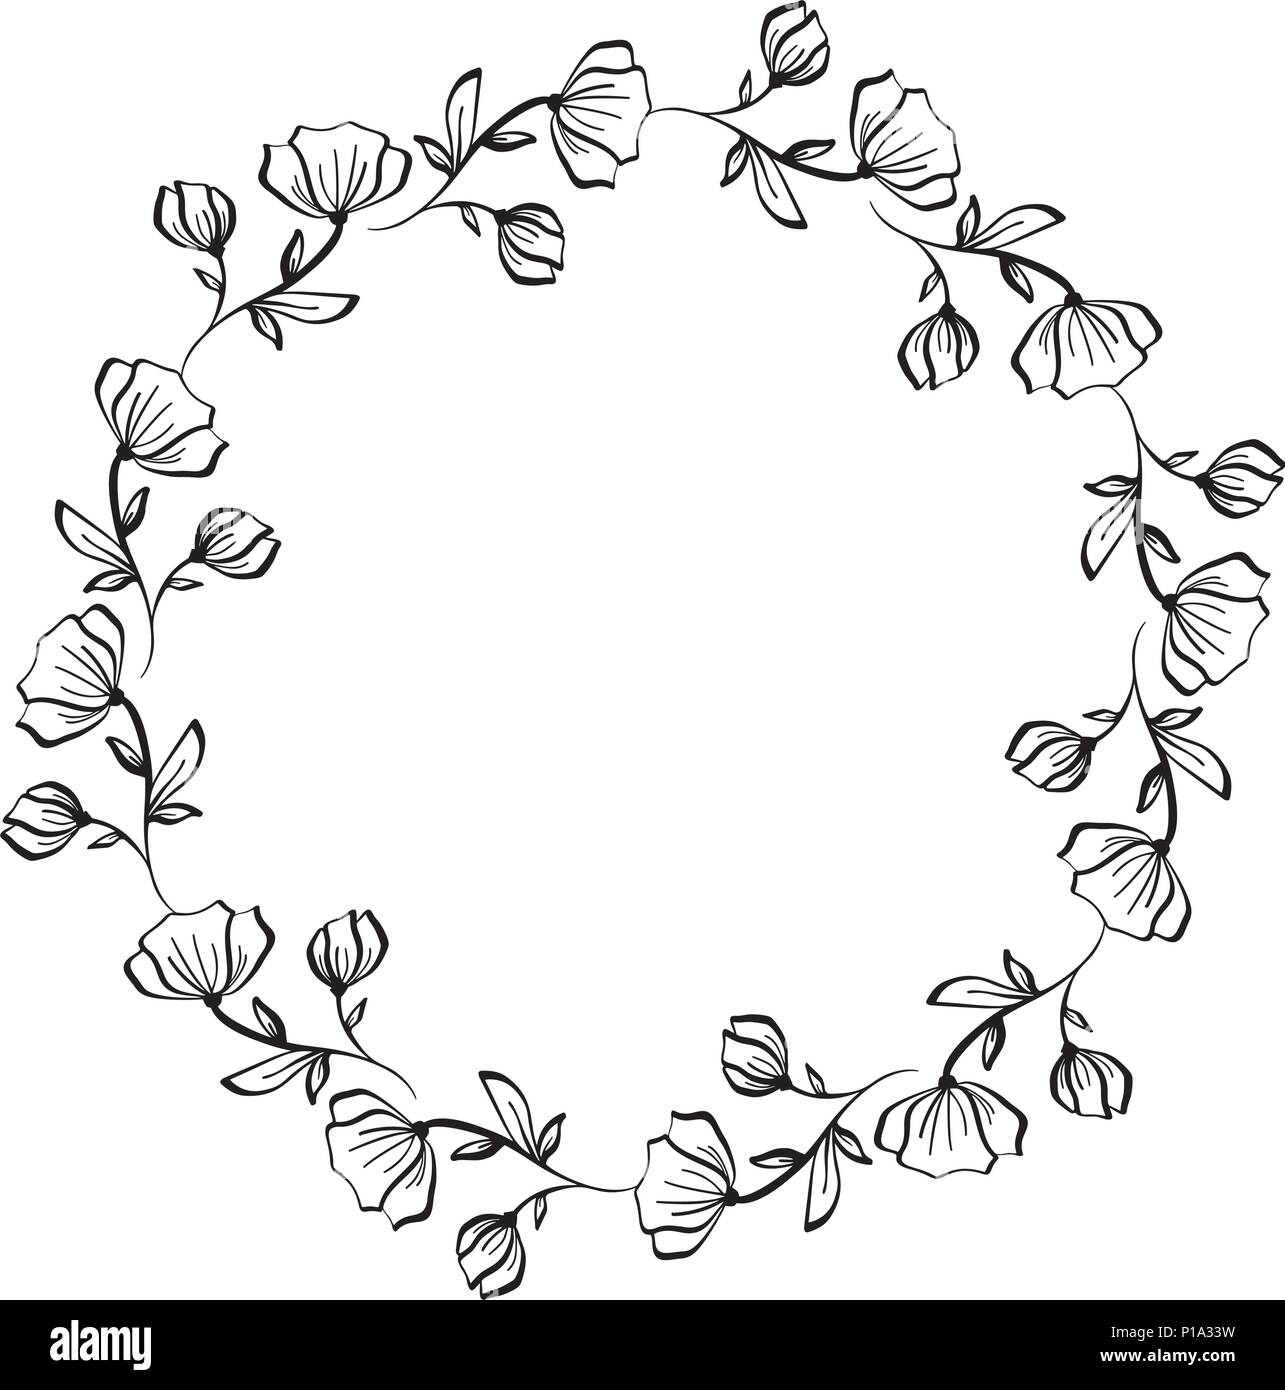 Lavender flowers decorative wreath isolated on white background ...